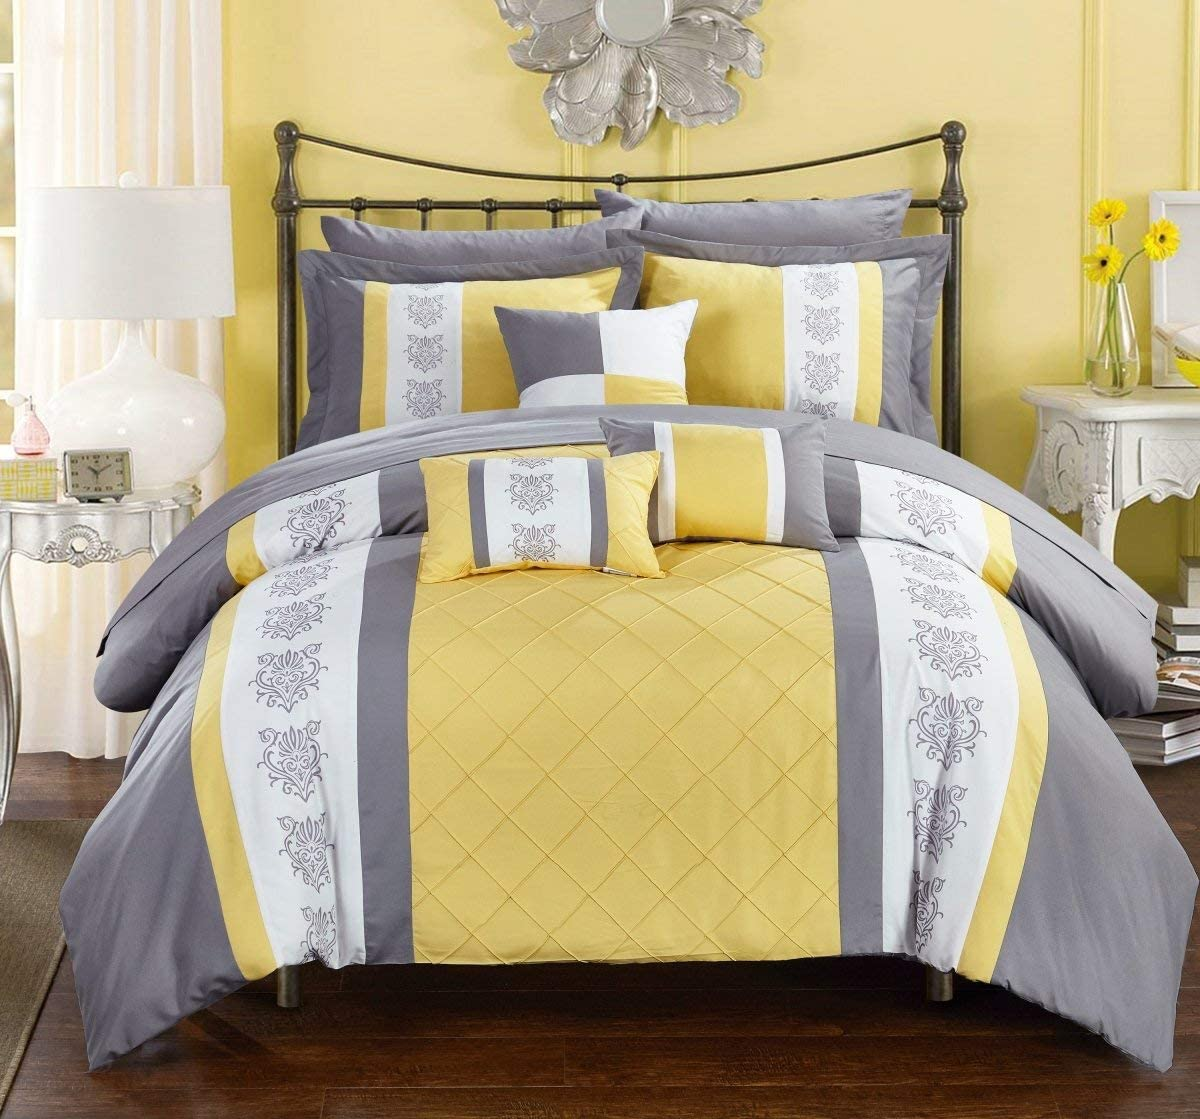 Chic Home Clayton 10 Piece Comforter Set, Queen, Yellow